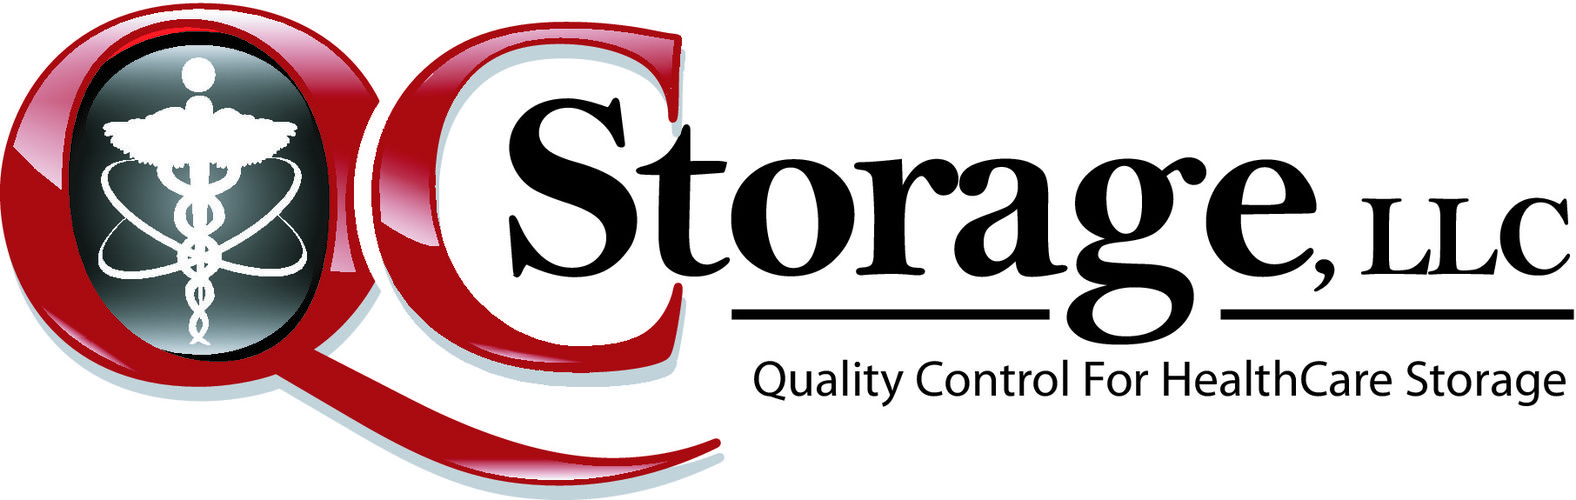 QC Storage, LLC